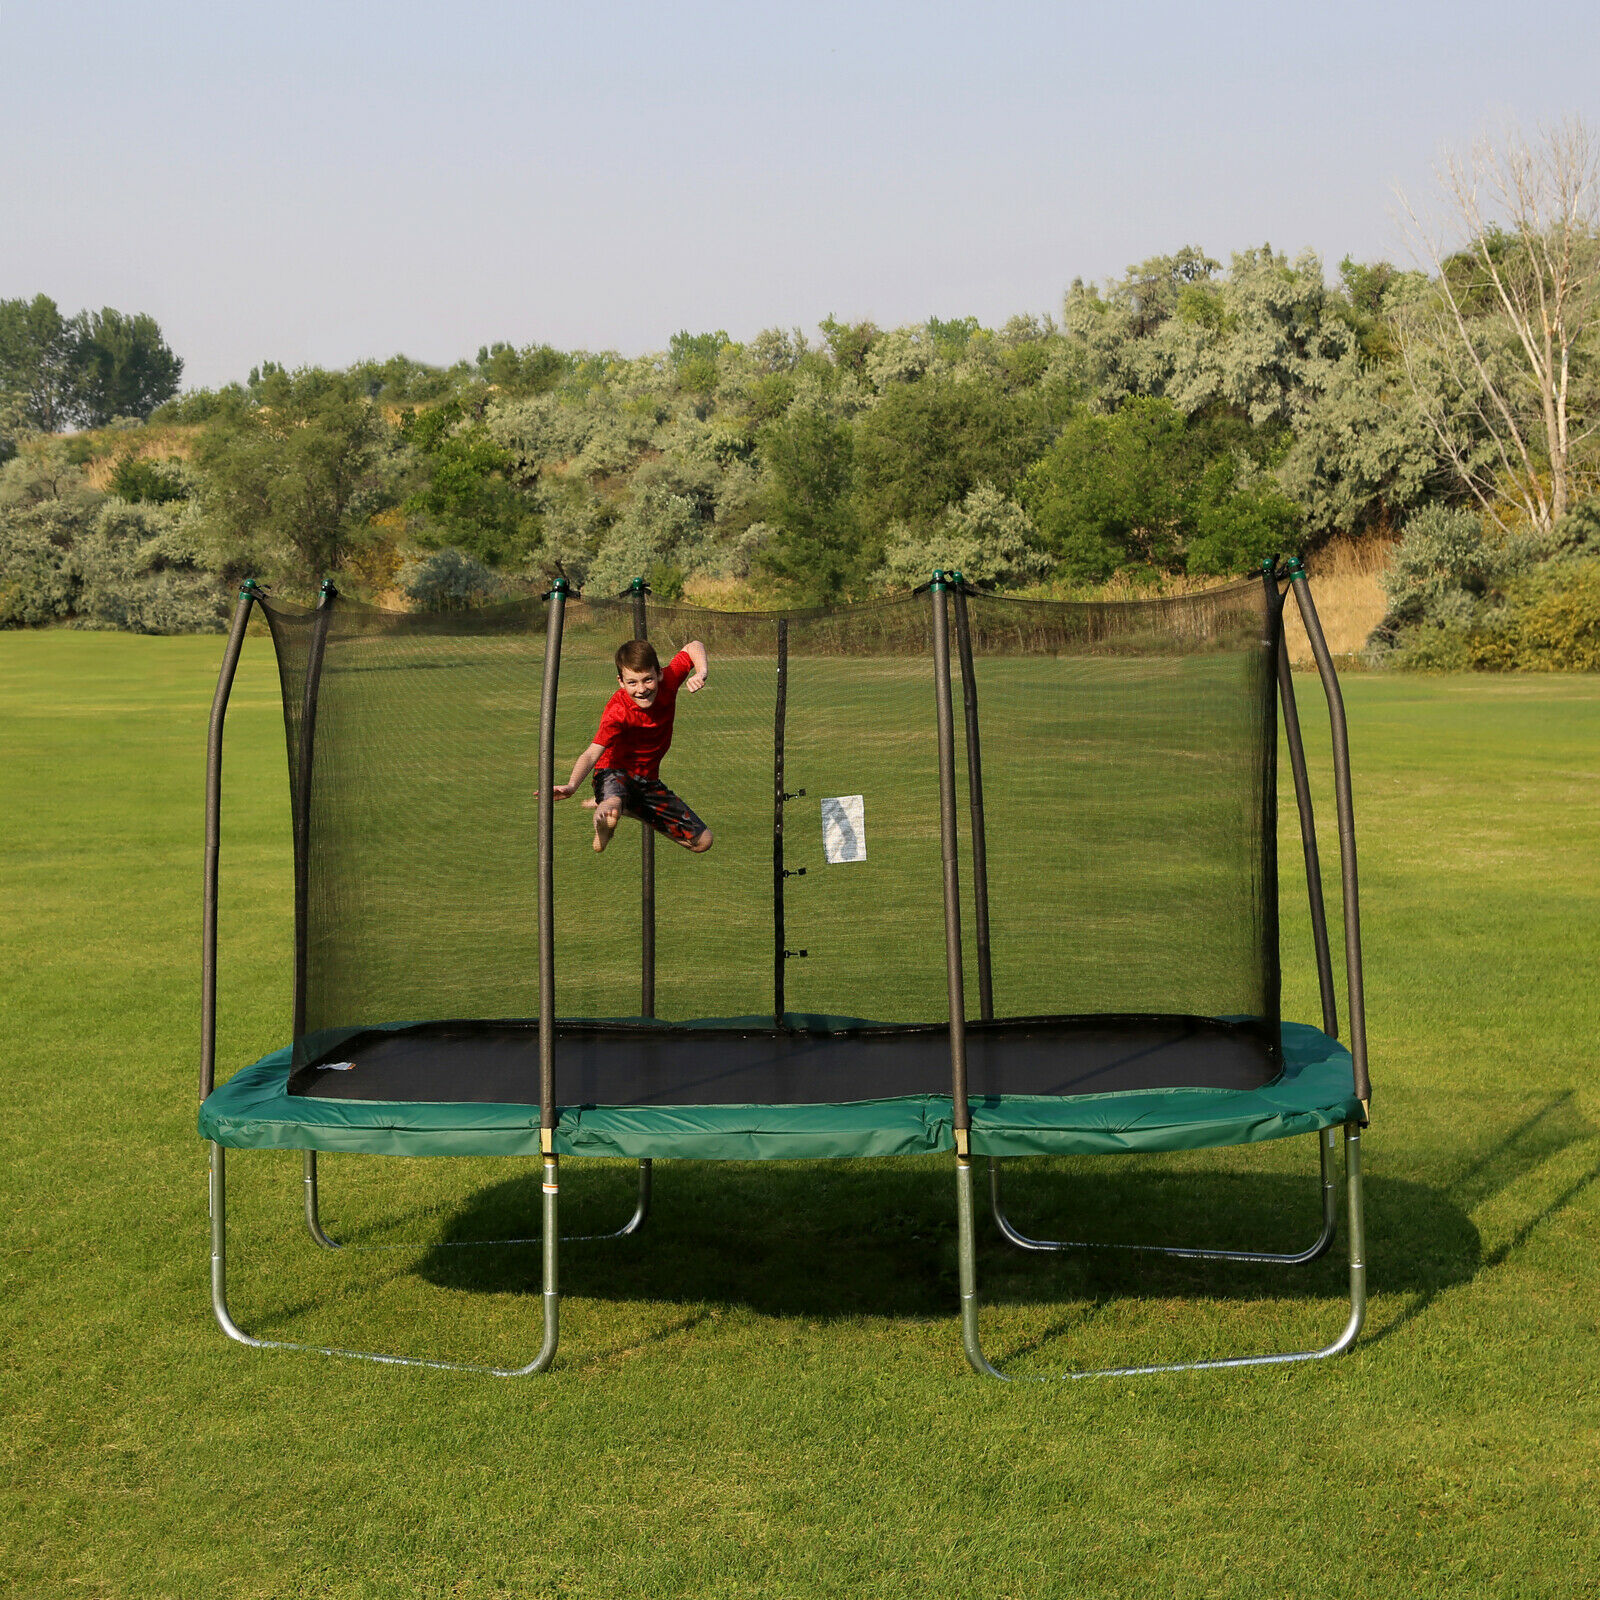 Trampoline Parts Center Coupon Code: Outdoor Trampoline Bouncer With Safety Net Rectangle 14 Ft